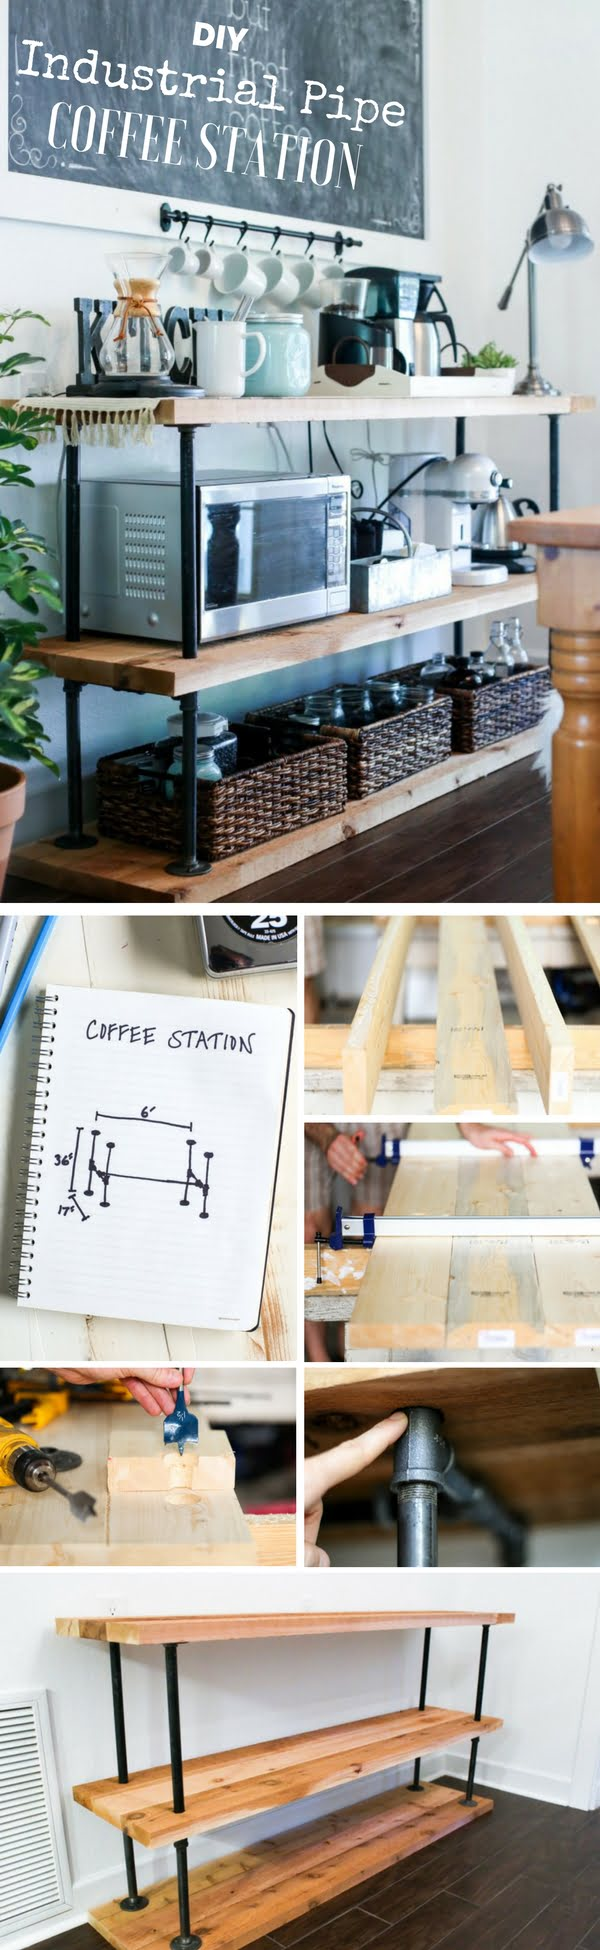 15 Simple DIY Ideas to Make the Best Coffee Station at Home - Easy to build DIY Industrial Pipe Coffee Station